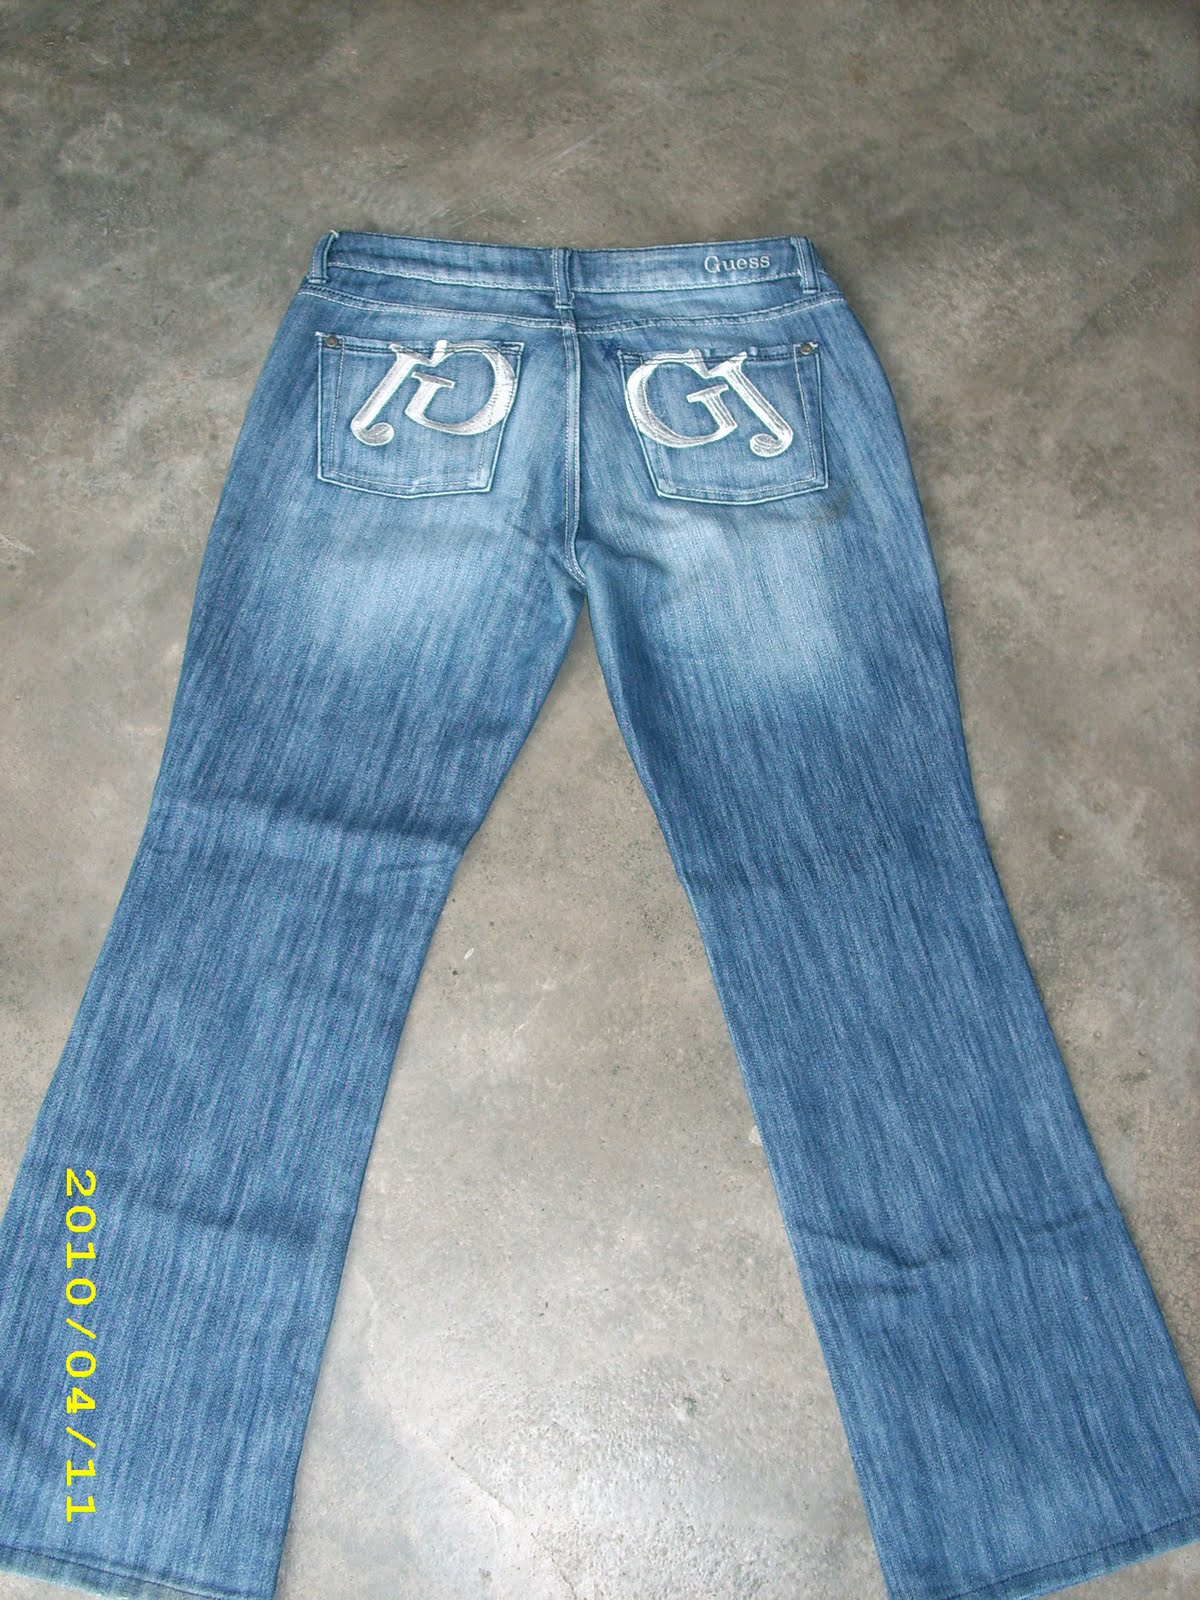 straight leg jeans The Straight Leg Jean is one of the most flattering timeless styles. Fitted at the top, around the waist and thighs, it is looser on the leg with a wider leg opening.